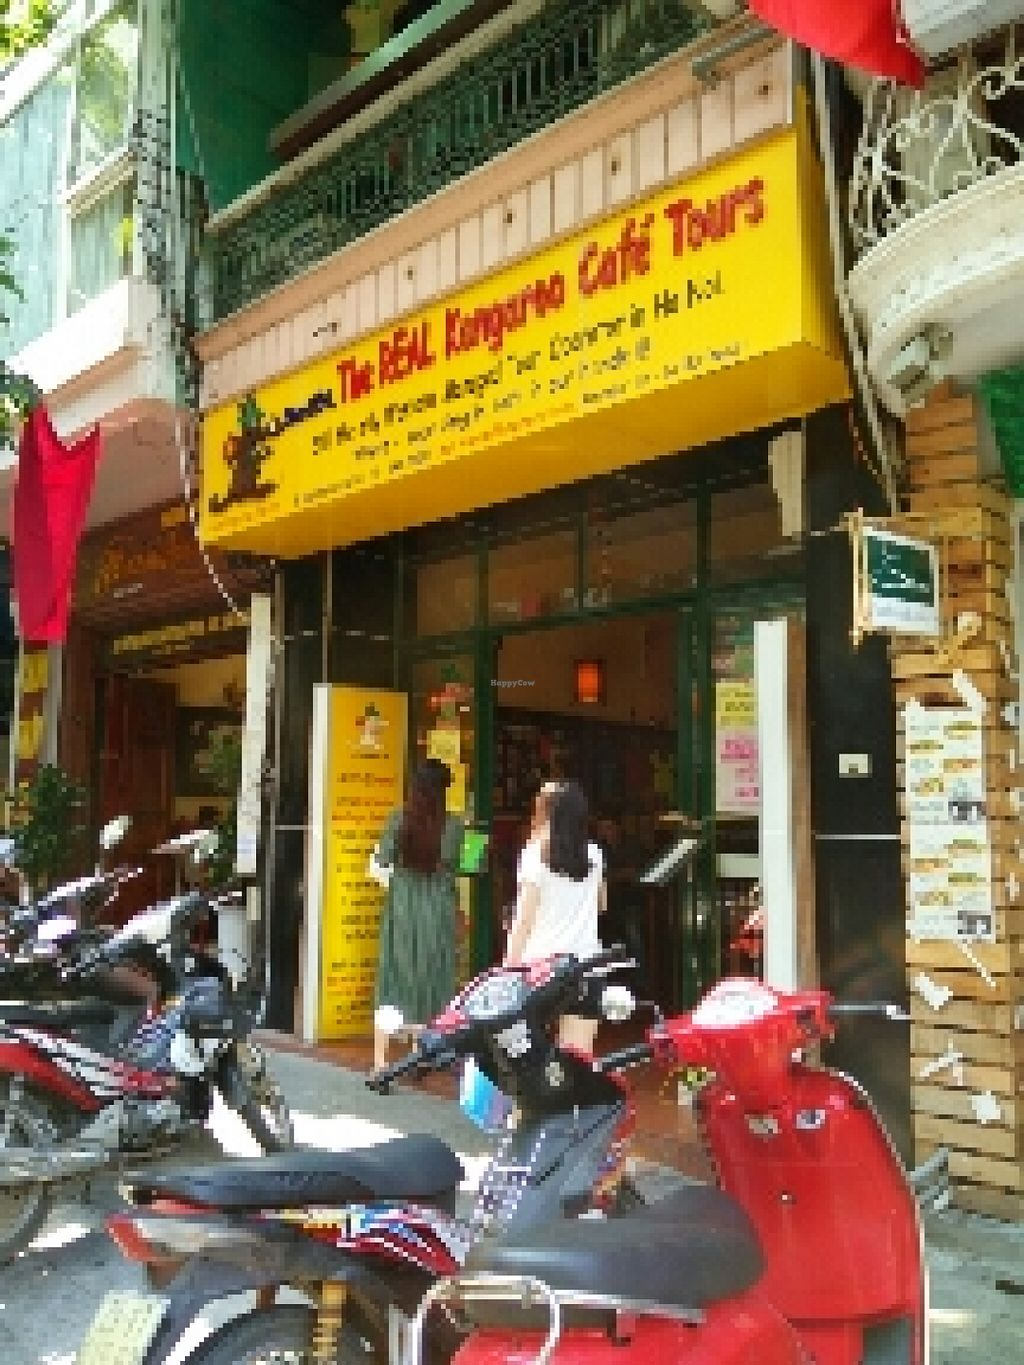 """Photo of Kangaroo Cafe  by <a href=""""/members/profile/longmaowei"""">longmaowei</a> <br/>front of the restaurant <br/> October 16, 2015  - <a href='/contact/abuse/image/22991/121438'>Report</a>"""